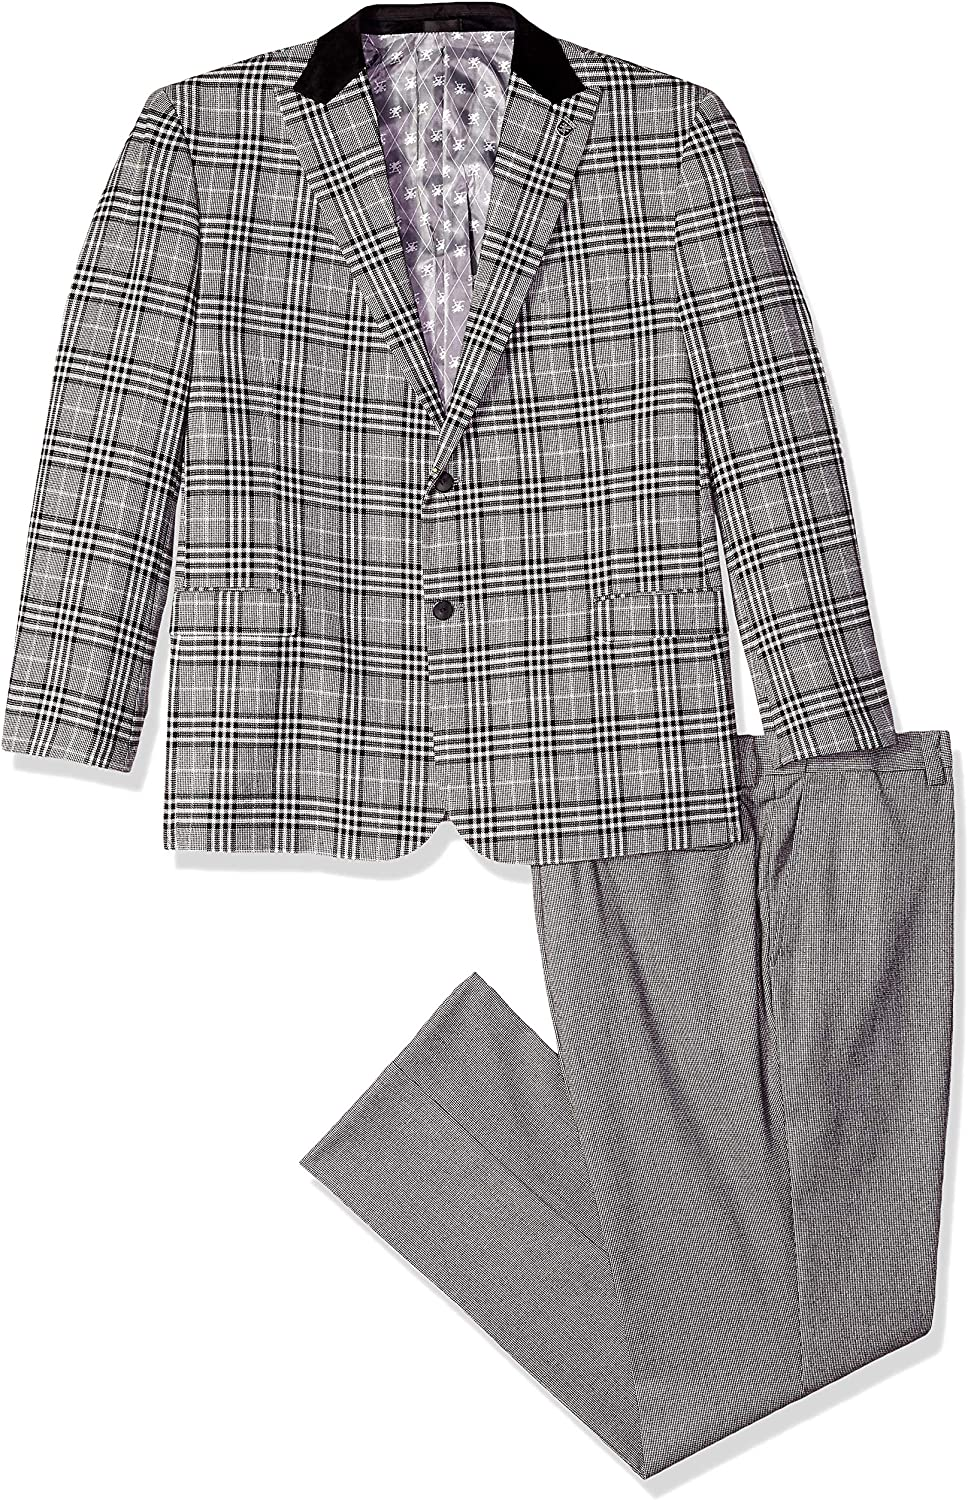 Direct sale of All items free shipping manufacturer STACY ADAMS Men's 3-Piece Peak Suit Lapel Plaid Vested